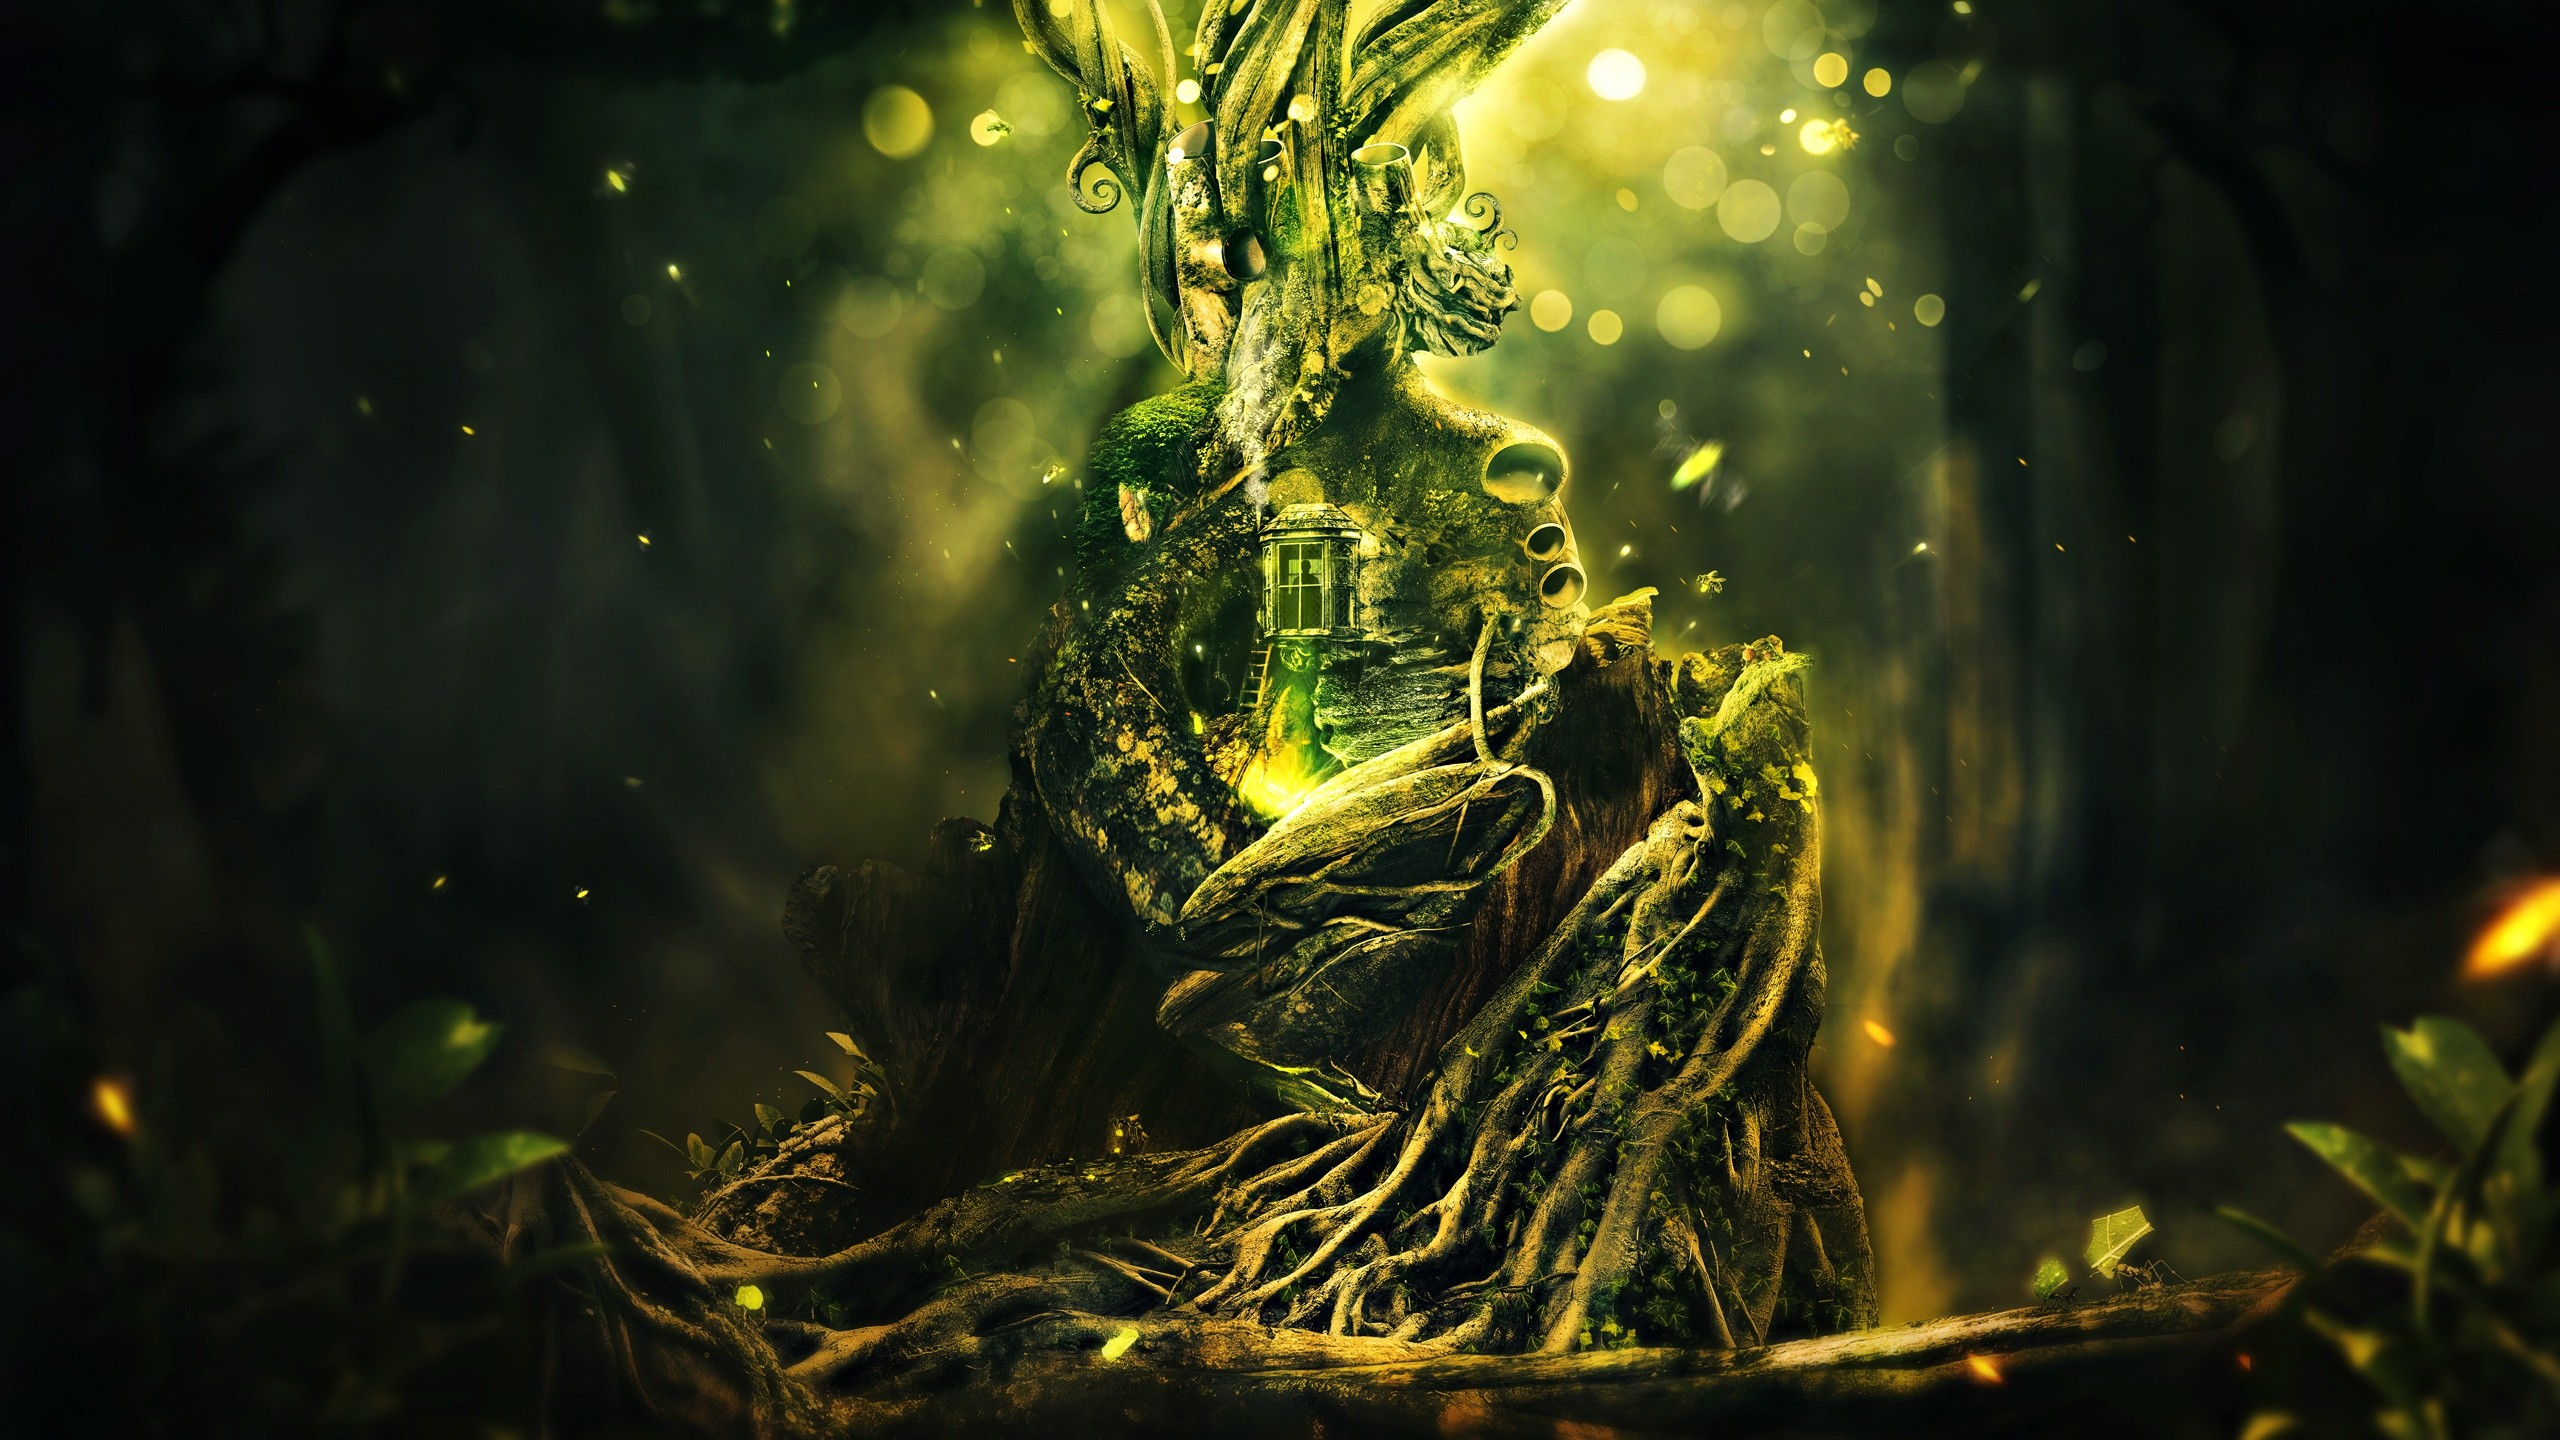 Res: 2560x1440, Mystical Wallpapers 12 - 2560 X 1440